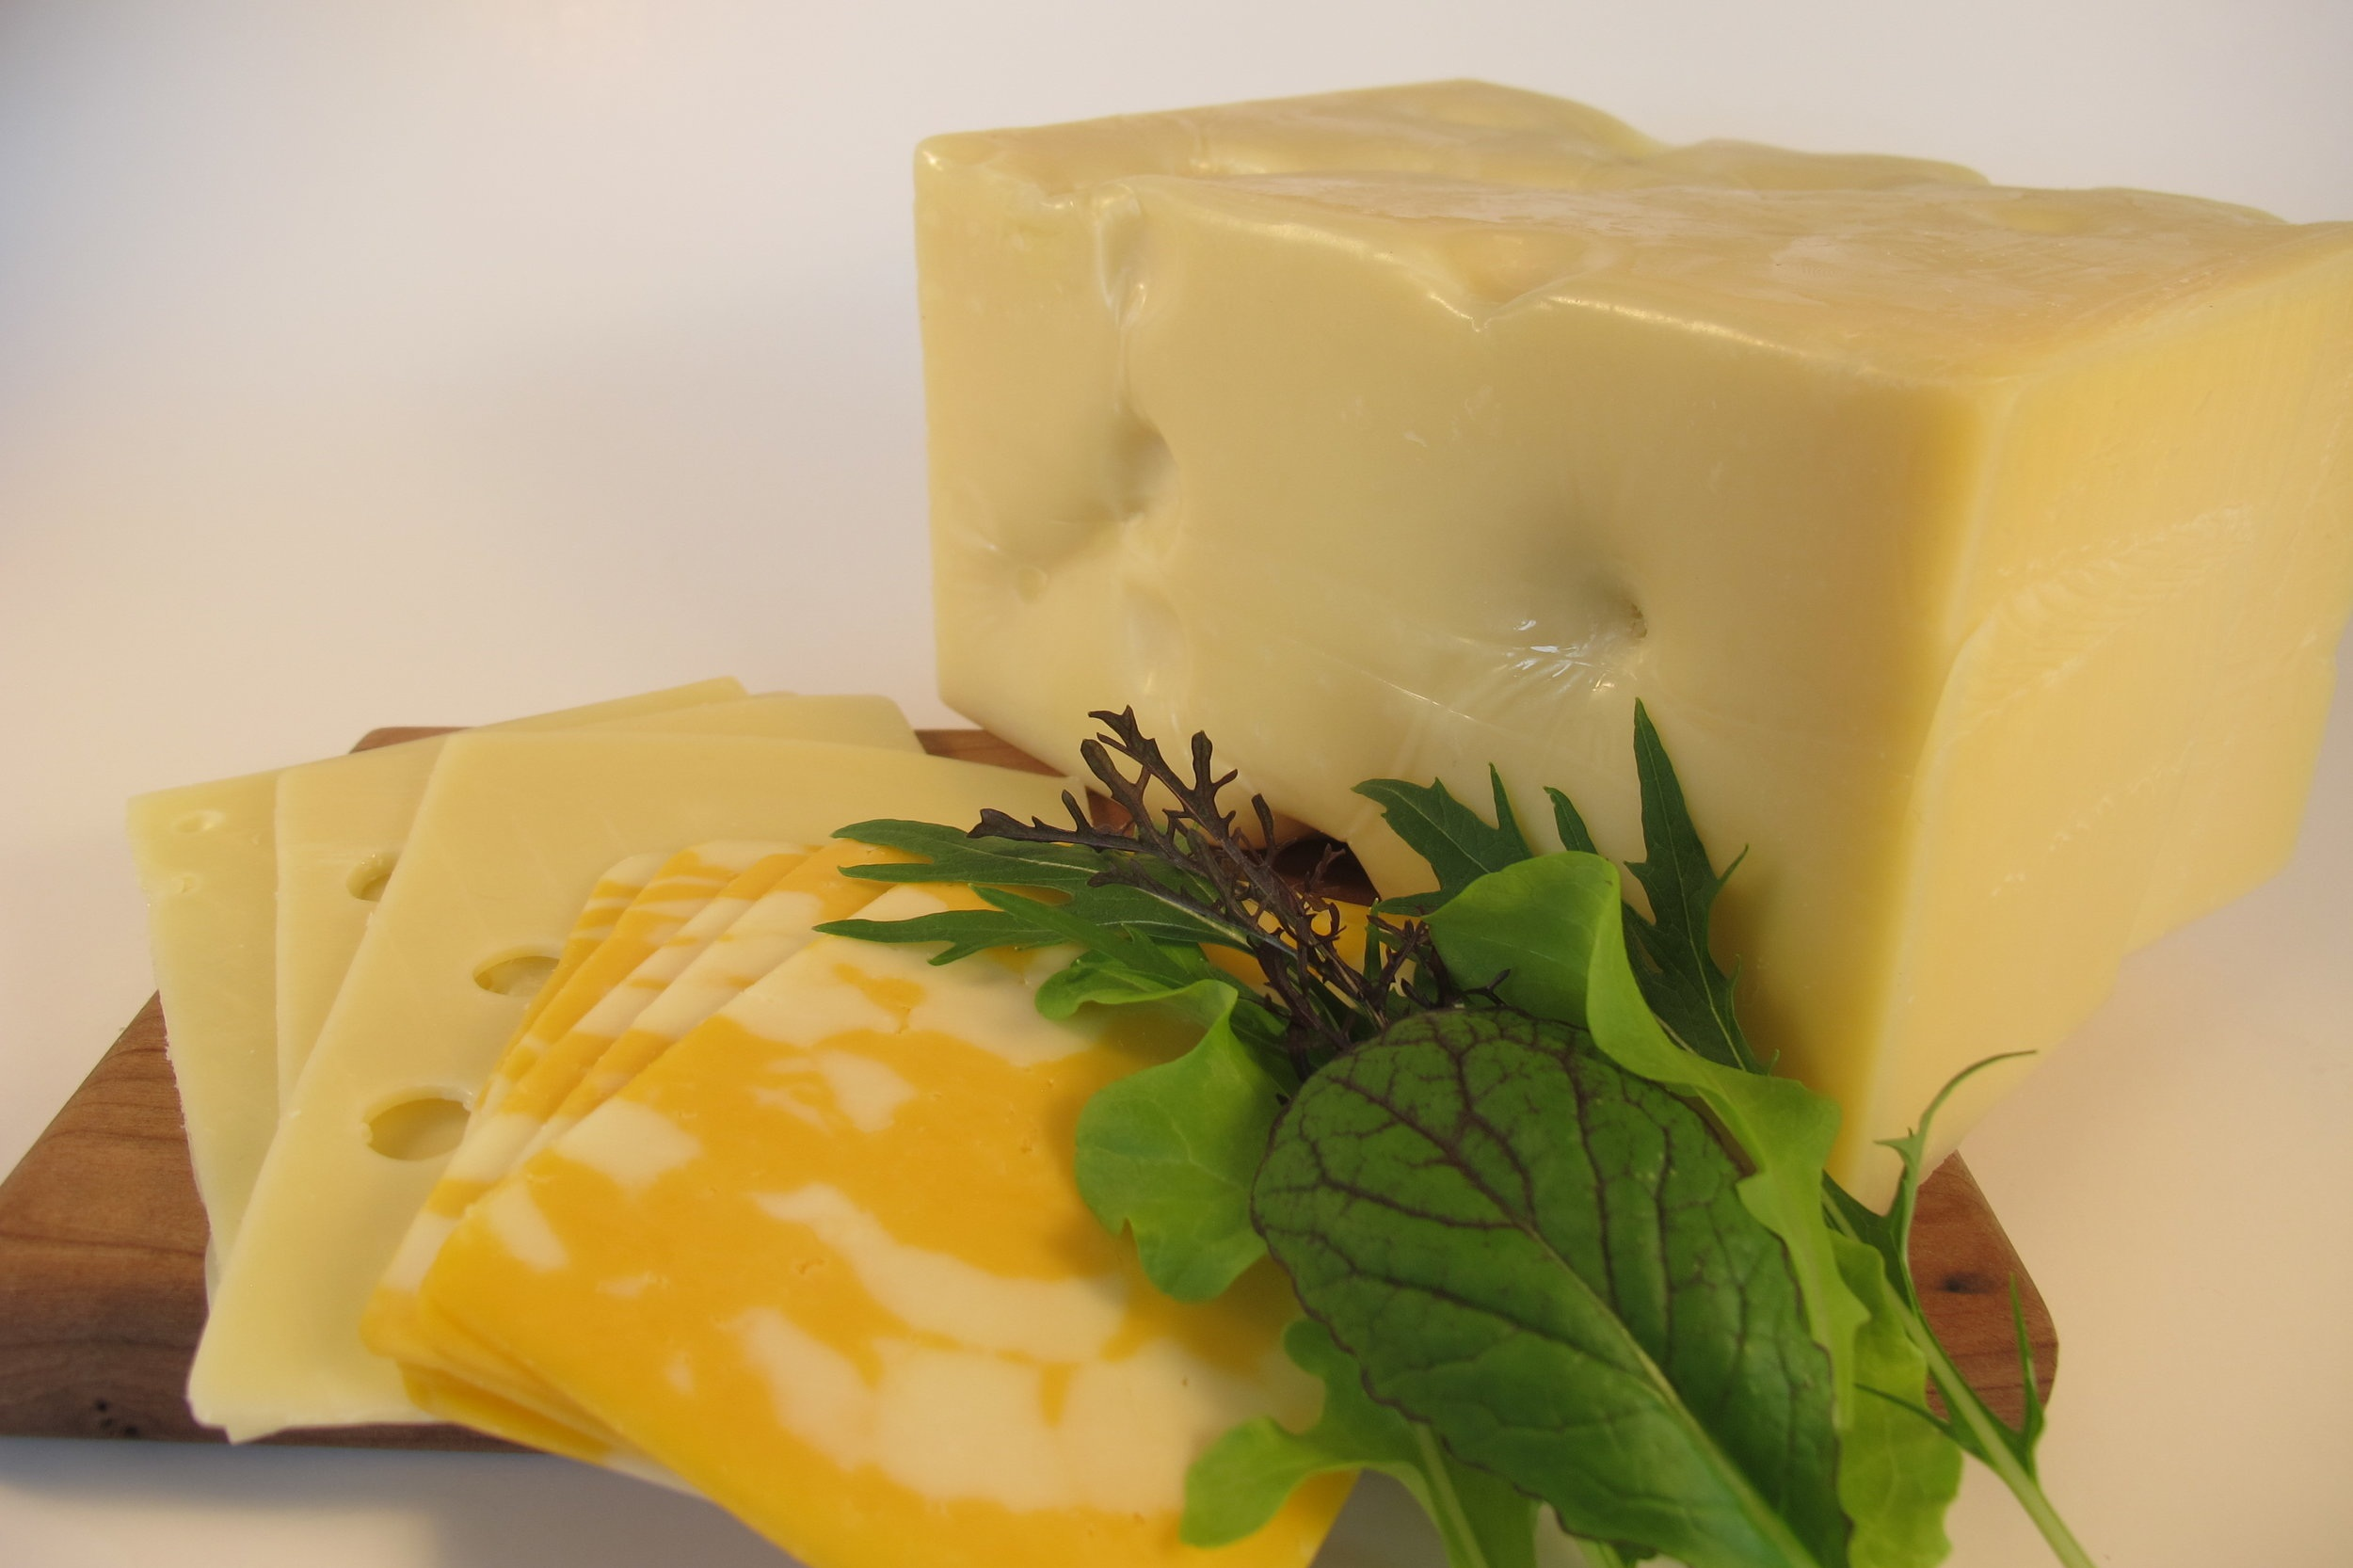 Cheese - Locally sourced cheeses sliced or available by the block